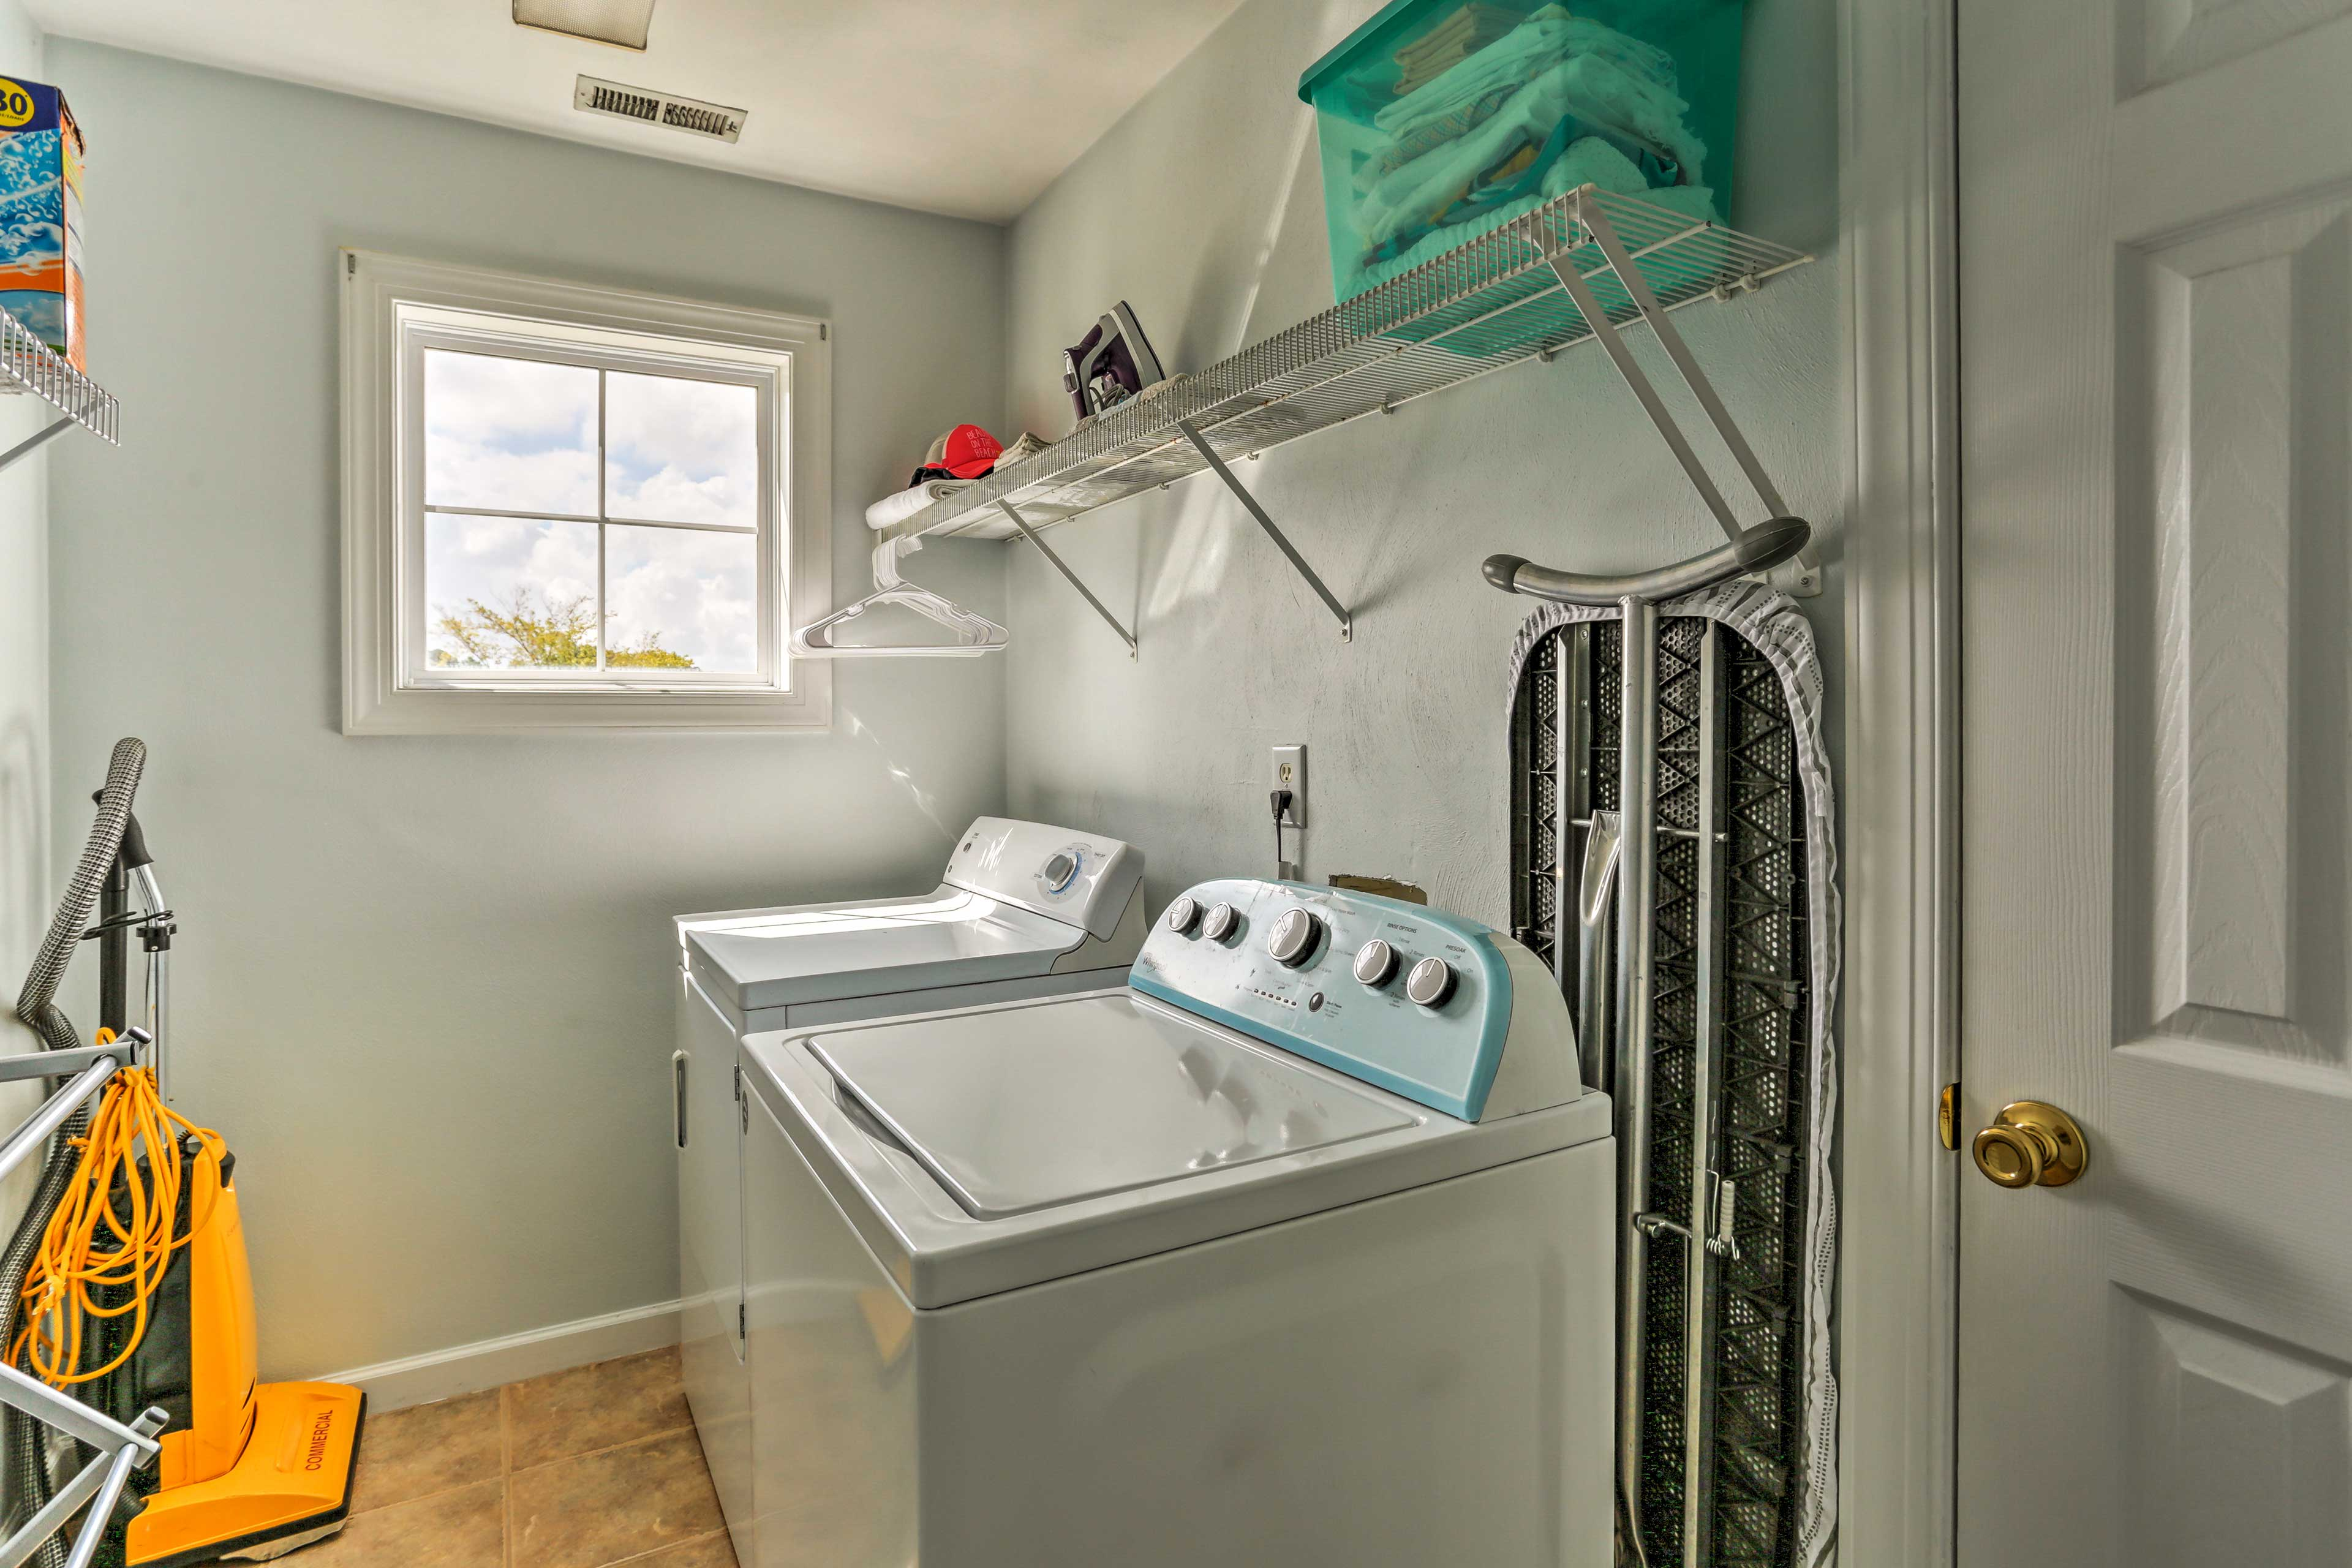 Pack light thanks to the convenient in-unit laundry machines.